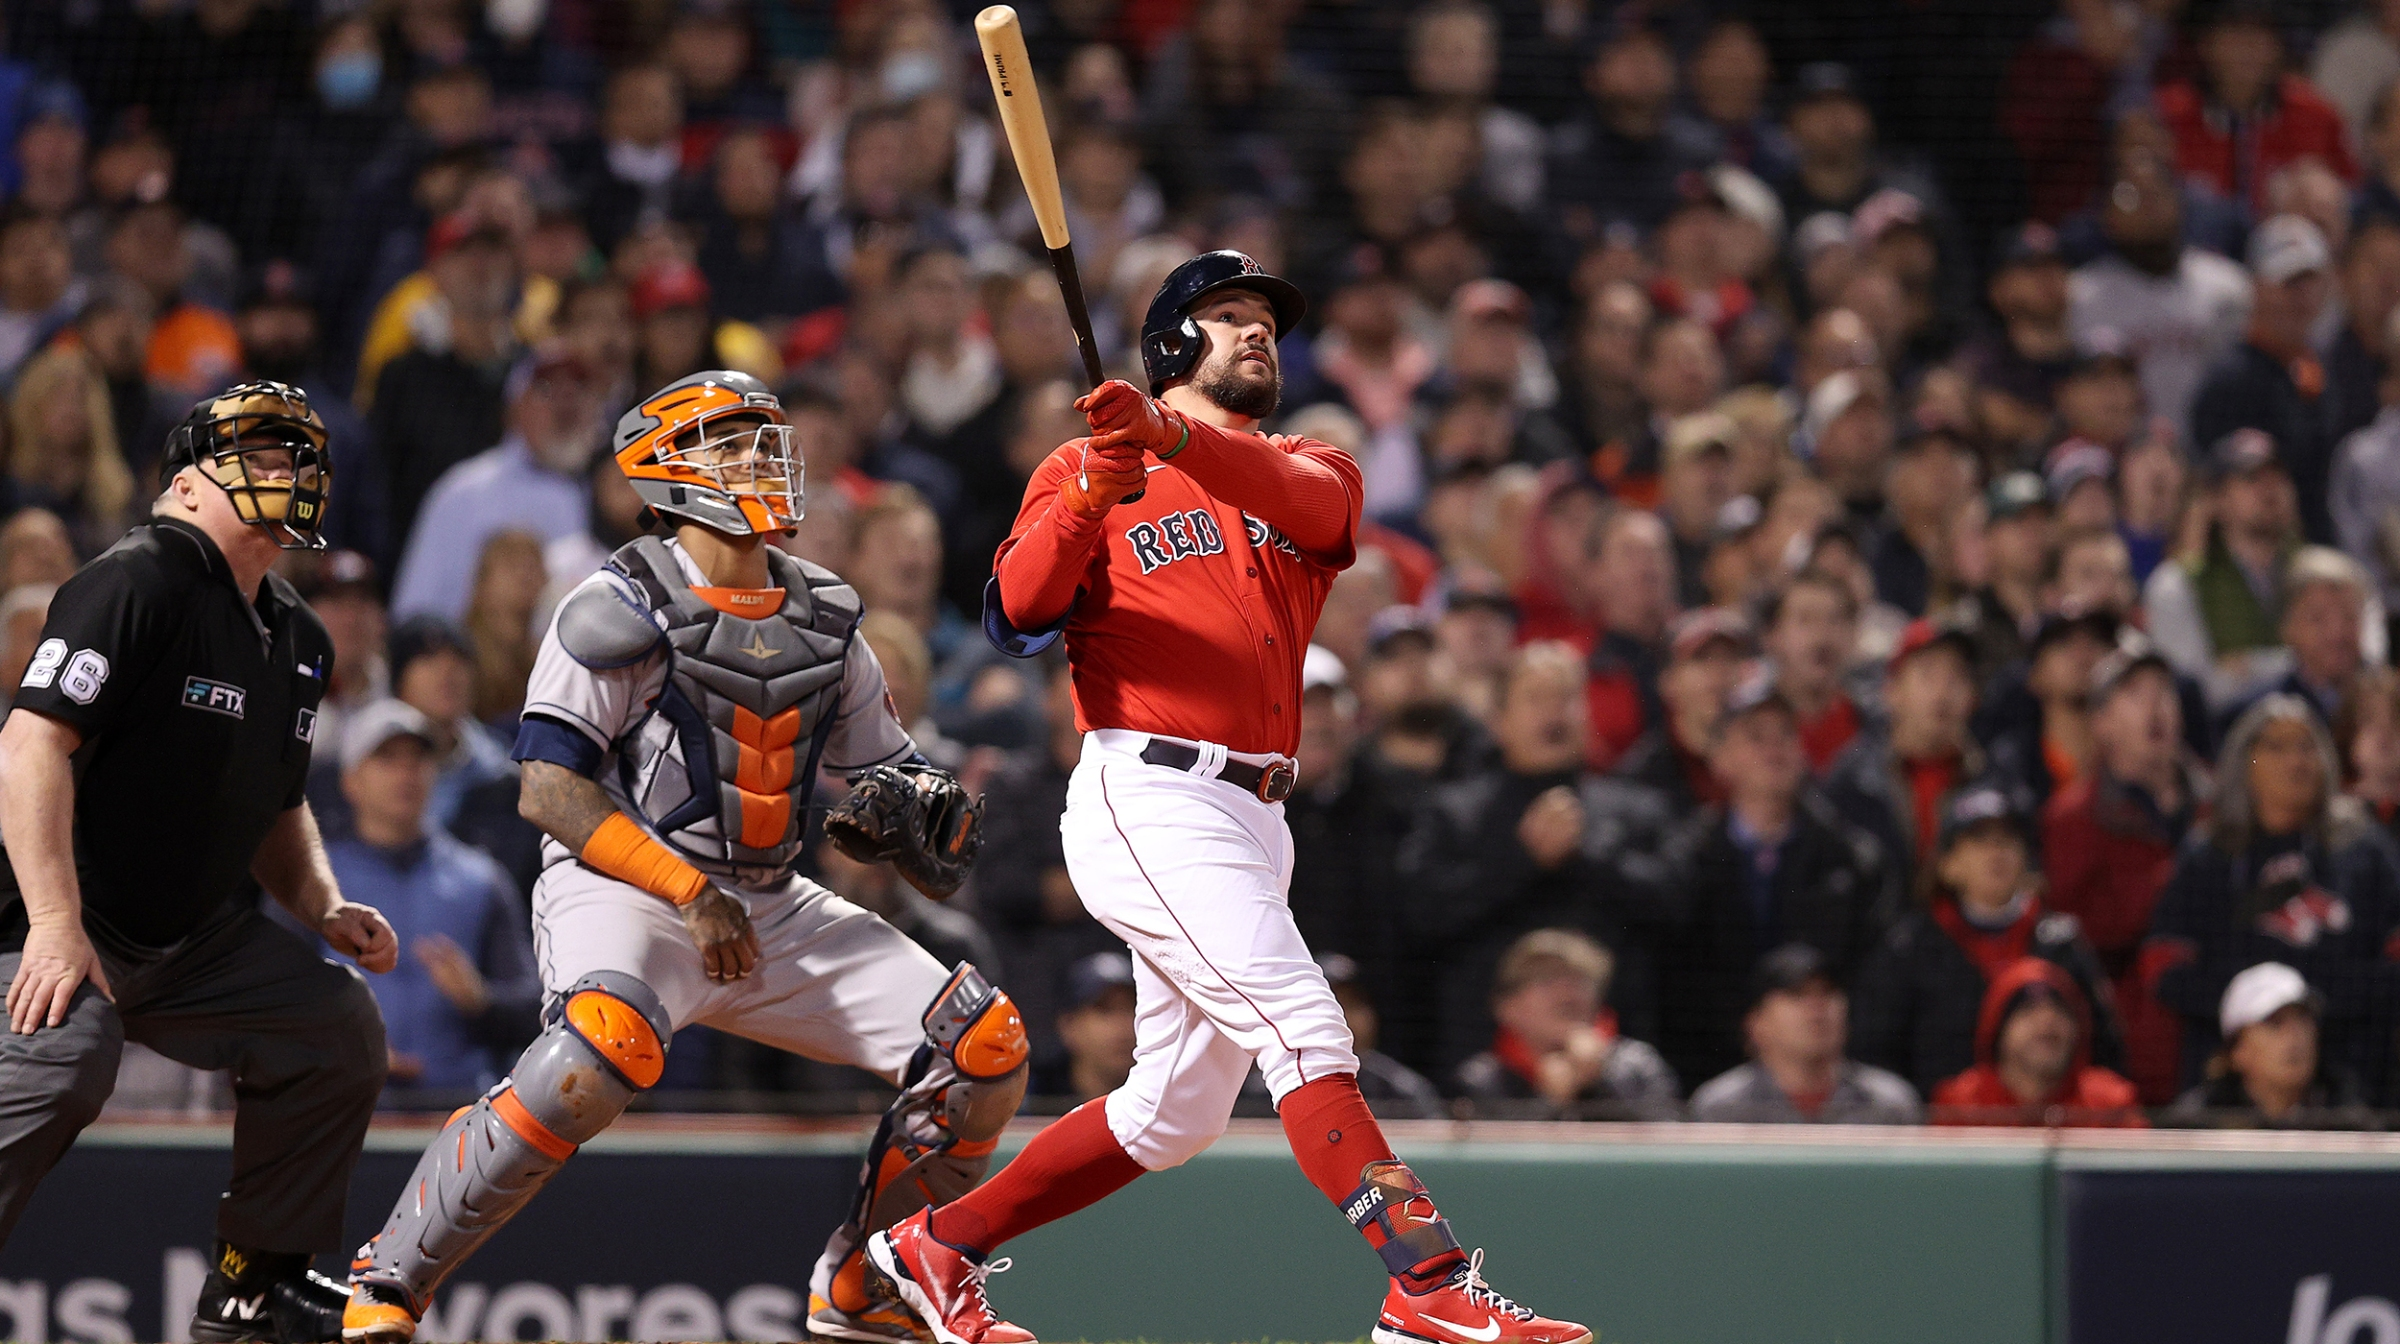 Kyle Schwarber #18 of the Boston Red Sox hits a grand slam home run against the Houston Astros in the second inning of Game Three of the American League Championship Series at Fenway Park on October 18, 2021 in Boston, Massachusetts.